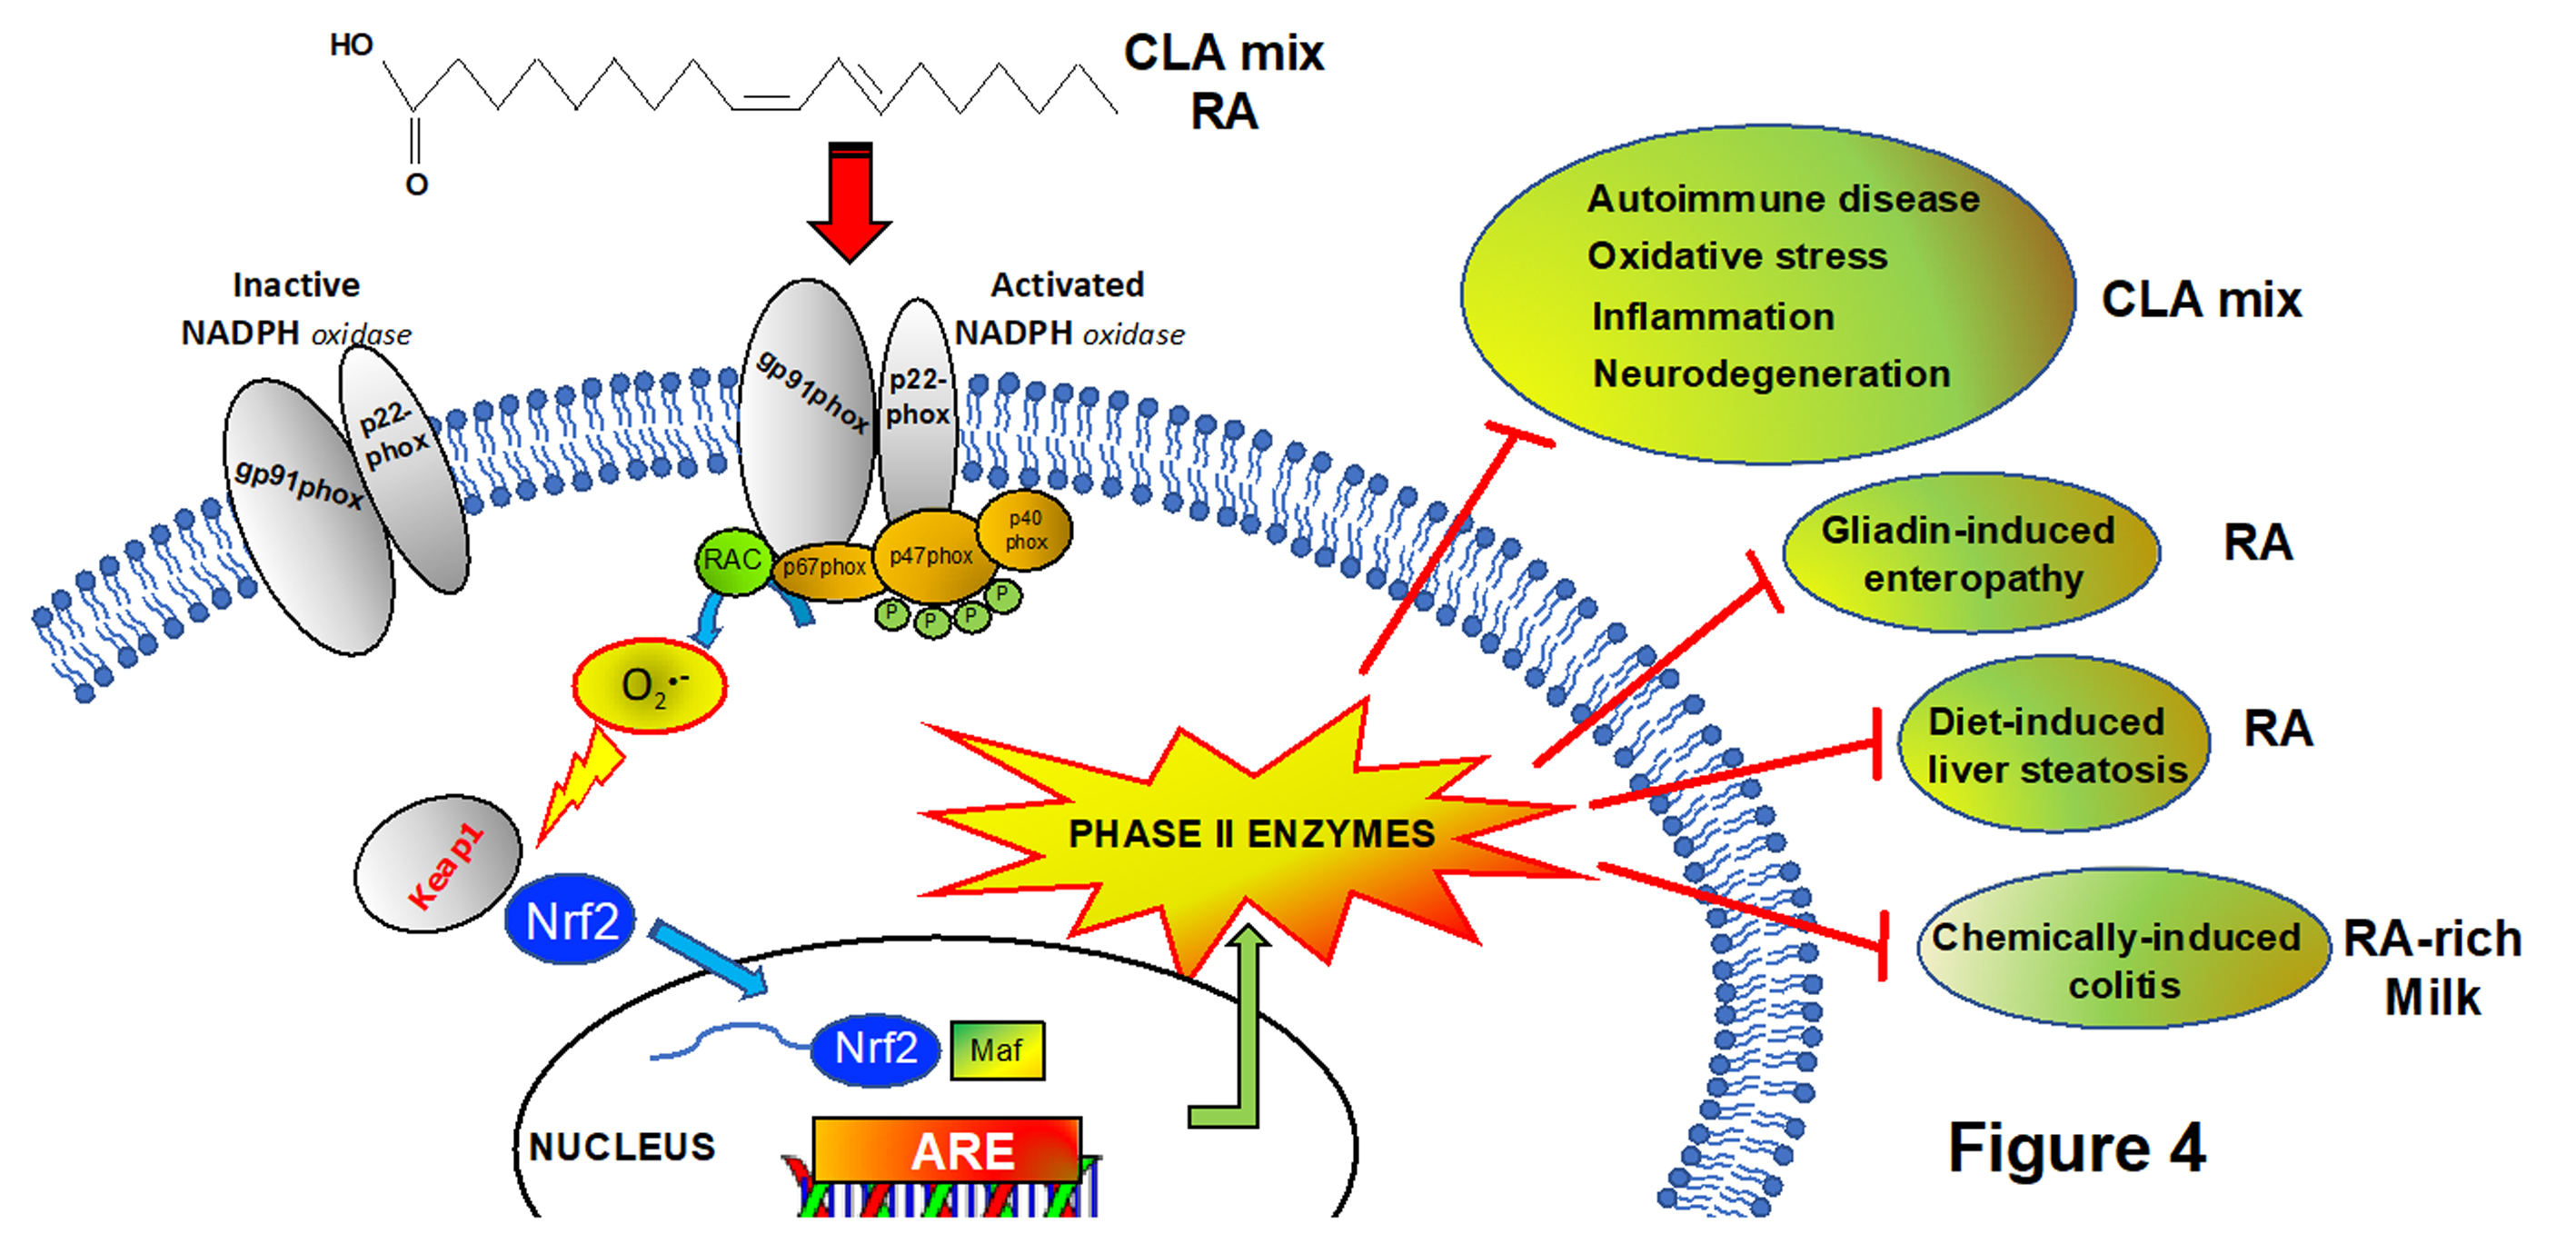 Adaptive response and cytoprotective properties of Conjugated linoleic acid CLA and Rumenic Acid RA